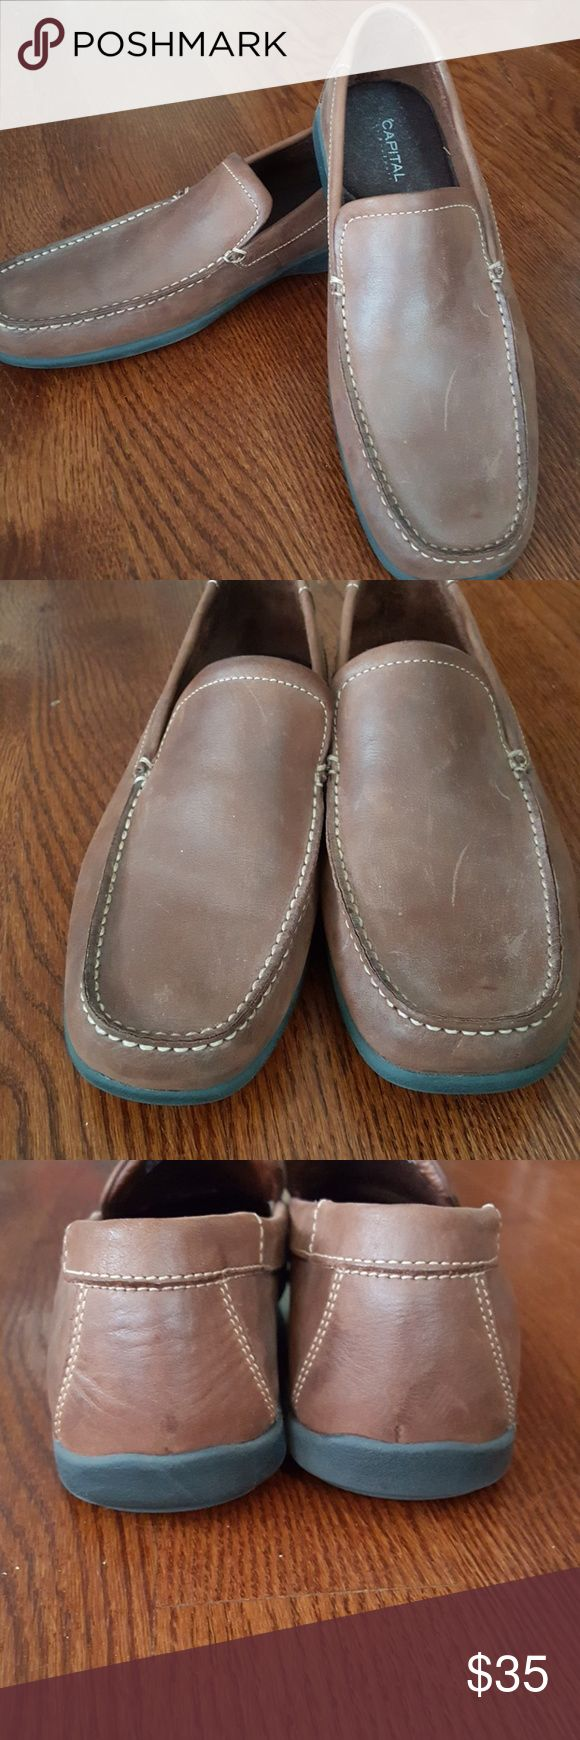 Men's Rockport shoes 10.5m Excellent pre-owned condition men's Capital by Rockport loafers. Size 10.5m. Beautiful brown leather with rubber soles. Soft cushion inside shoes.   Check out my other listings and save with bundling! Thanks for looking! Rockport Shoes Loafers & Slip-Ons